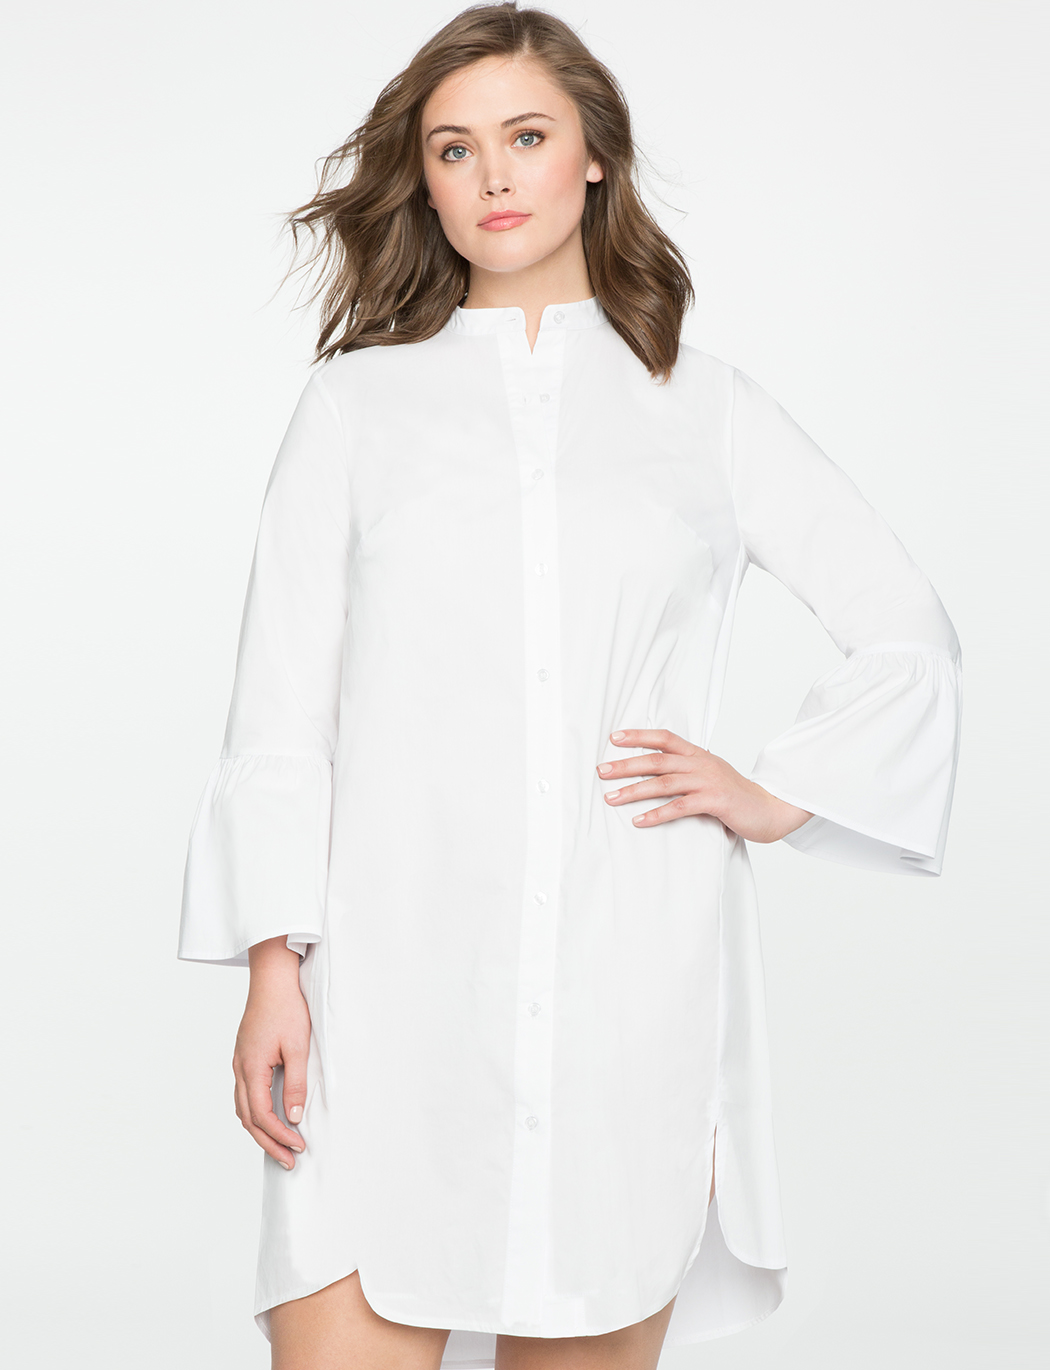 Shirt Dress with Flare Sleeves | Women\'s Plus Size Dresses | ELOQUII